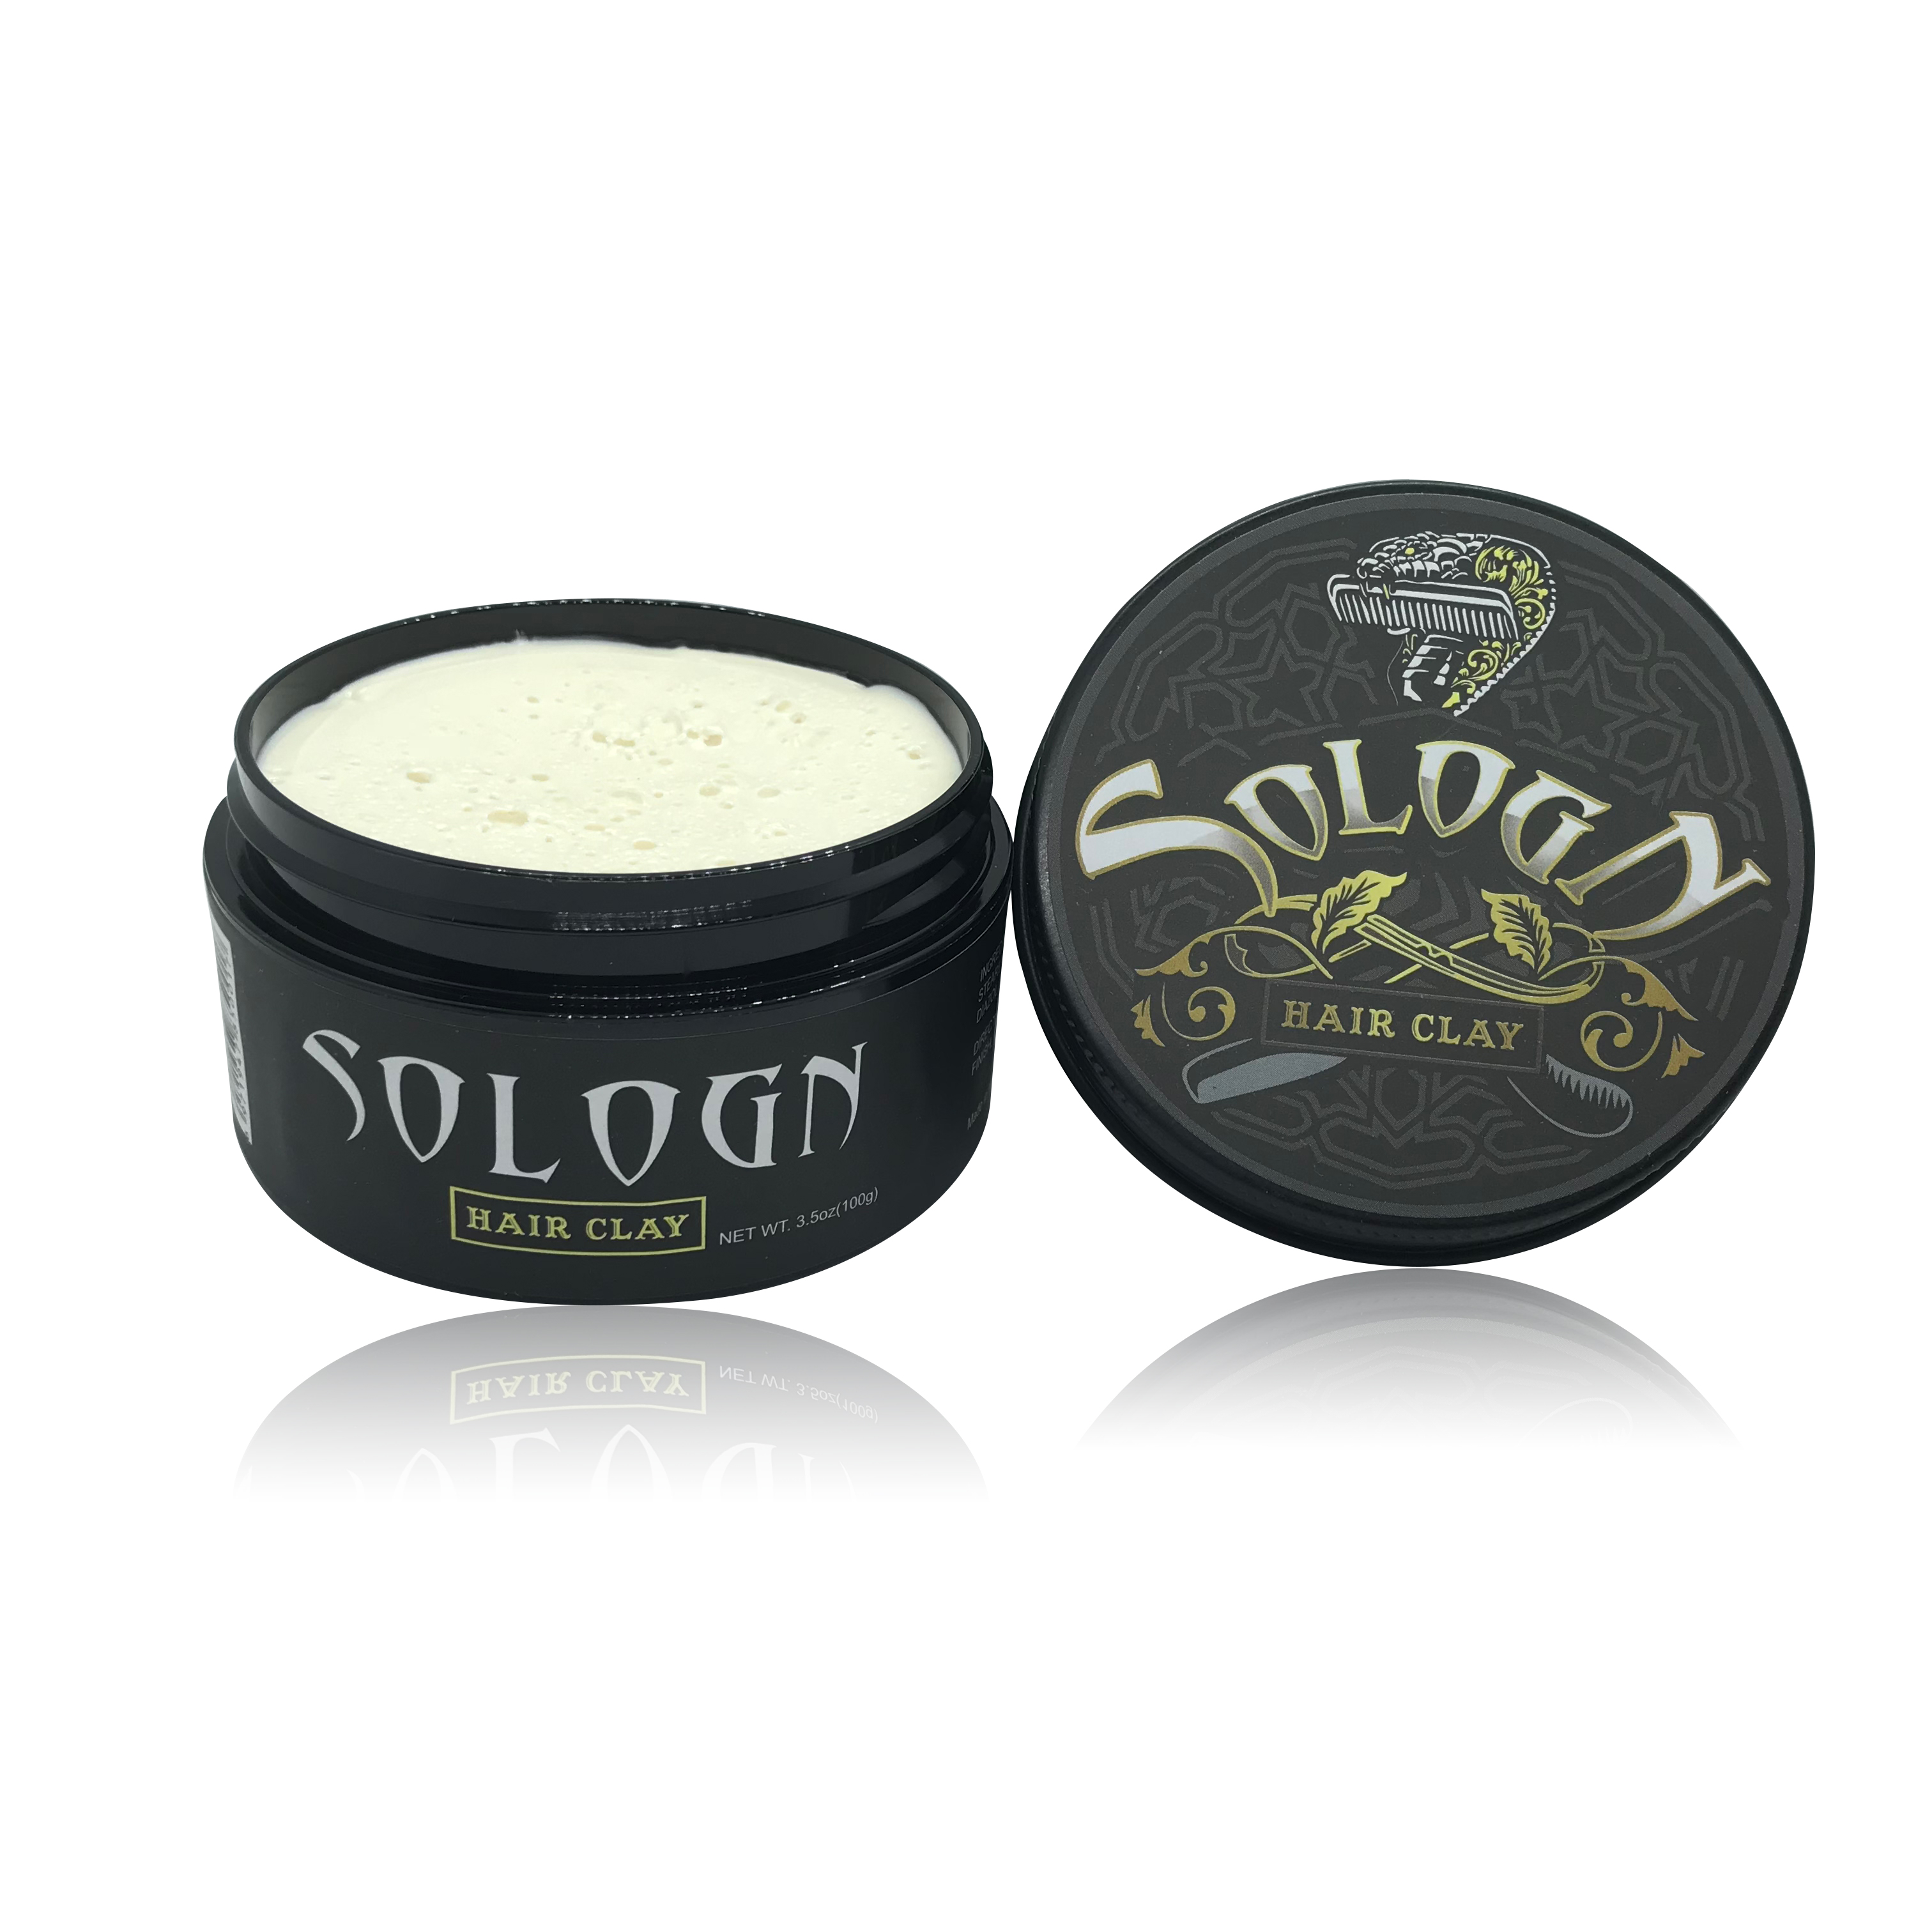 Sologn Top Hair Styling Products Brand Extreme Hold Organic Hair Styling Wax For Men Water Soluble Hair Styling Clay Pomade Buy Factory Directly Sales Hair Styling Pomade Water Based Colorful Pomade Product On Alibaba Com